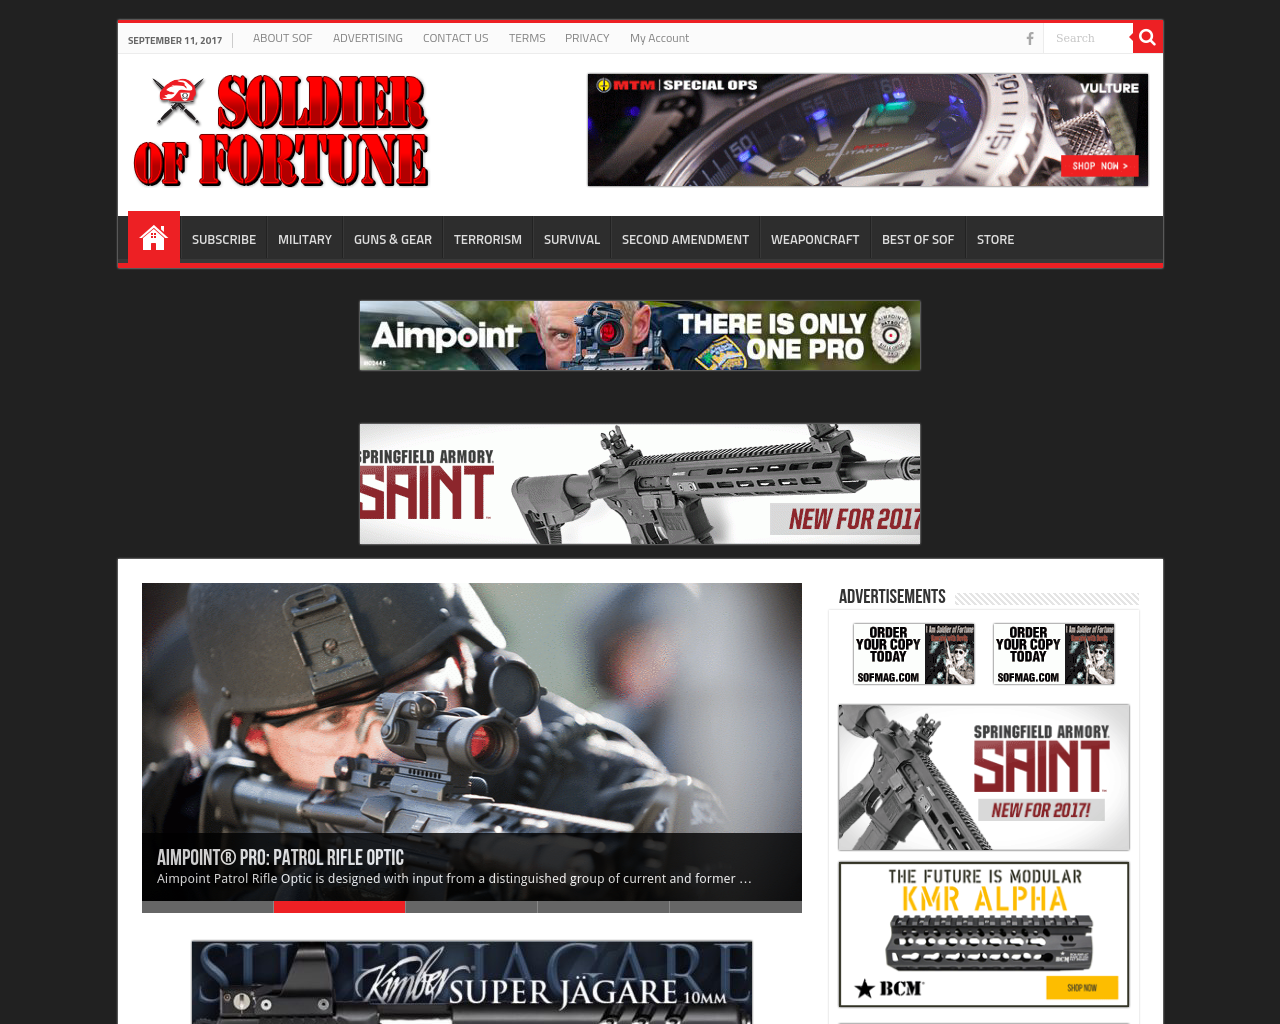 Soldier-Of-Fortune-Magazine-Advertising-Reviews-Pricing